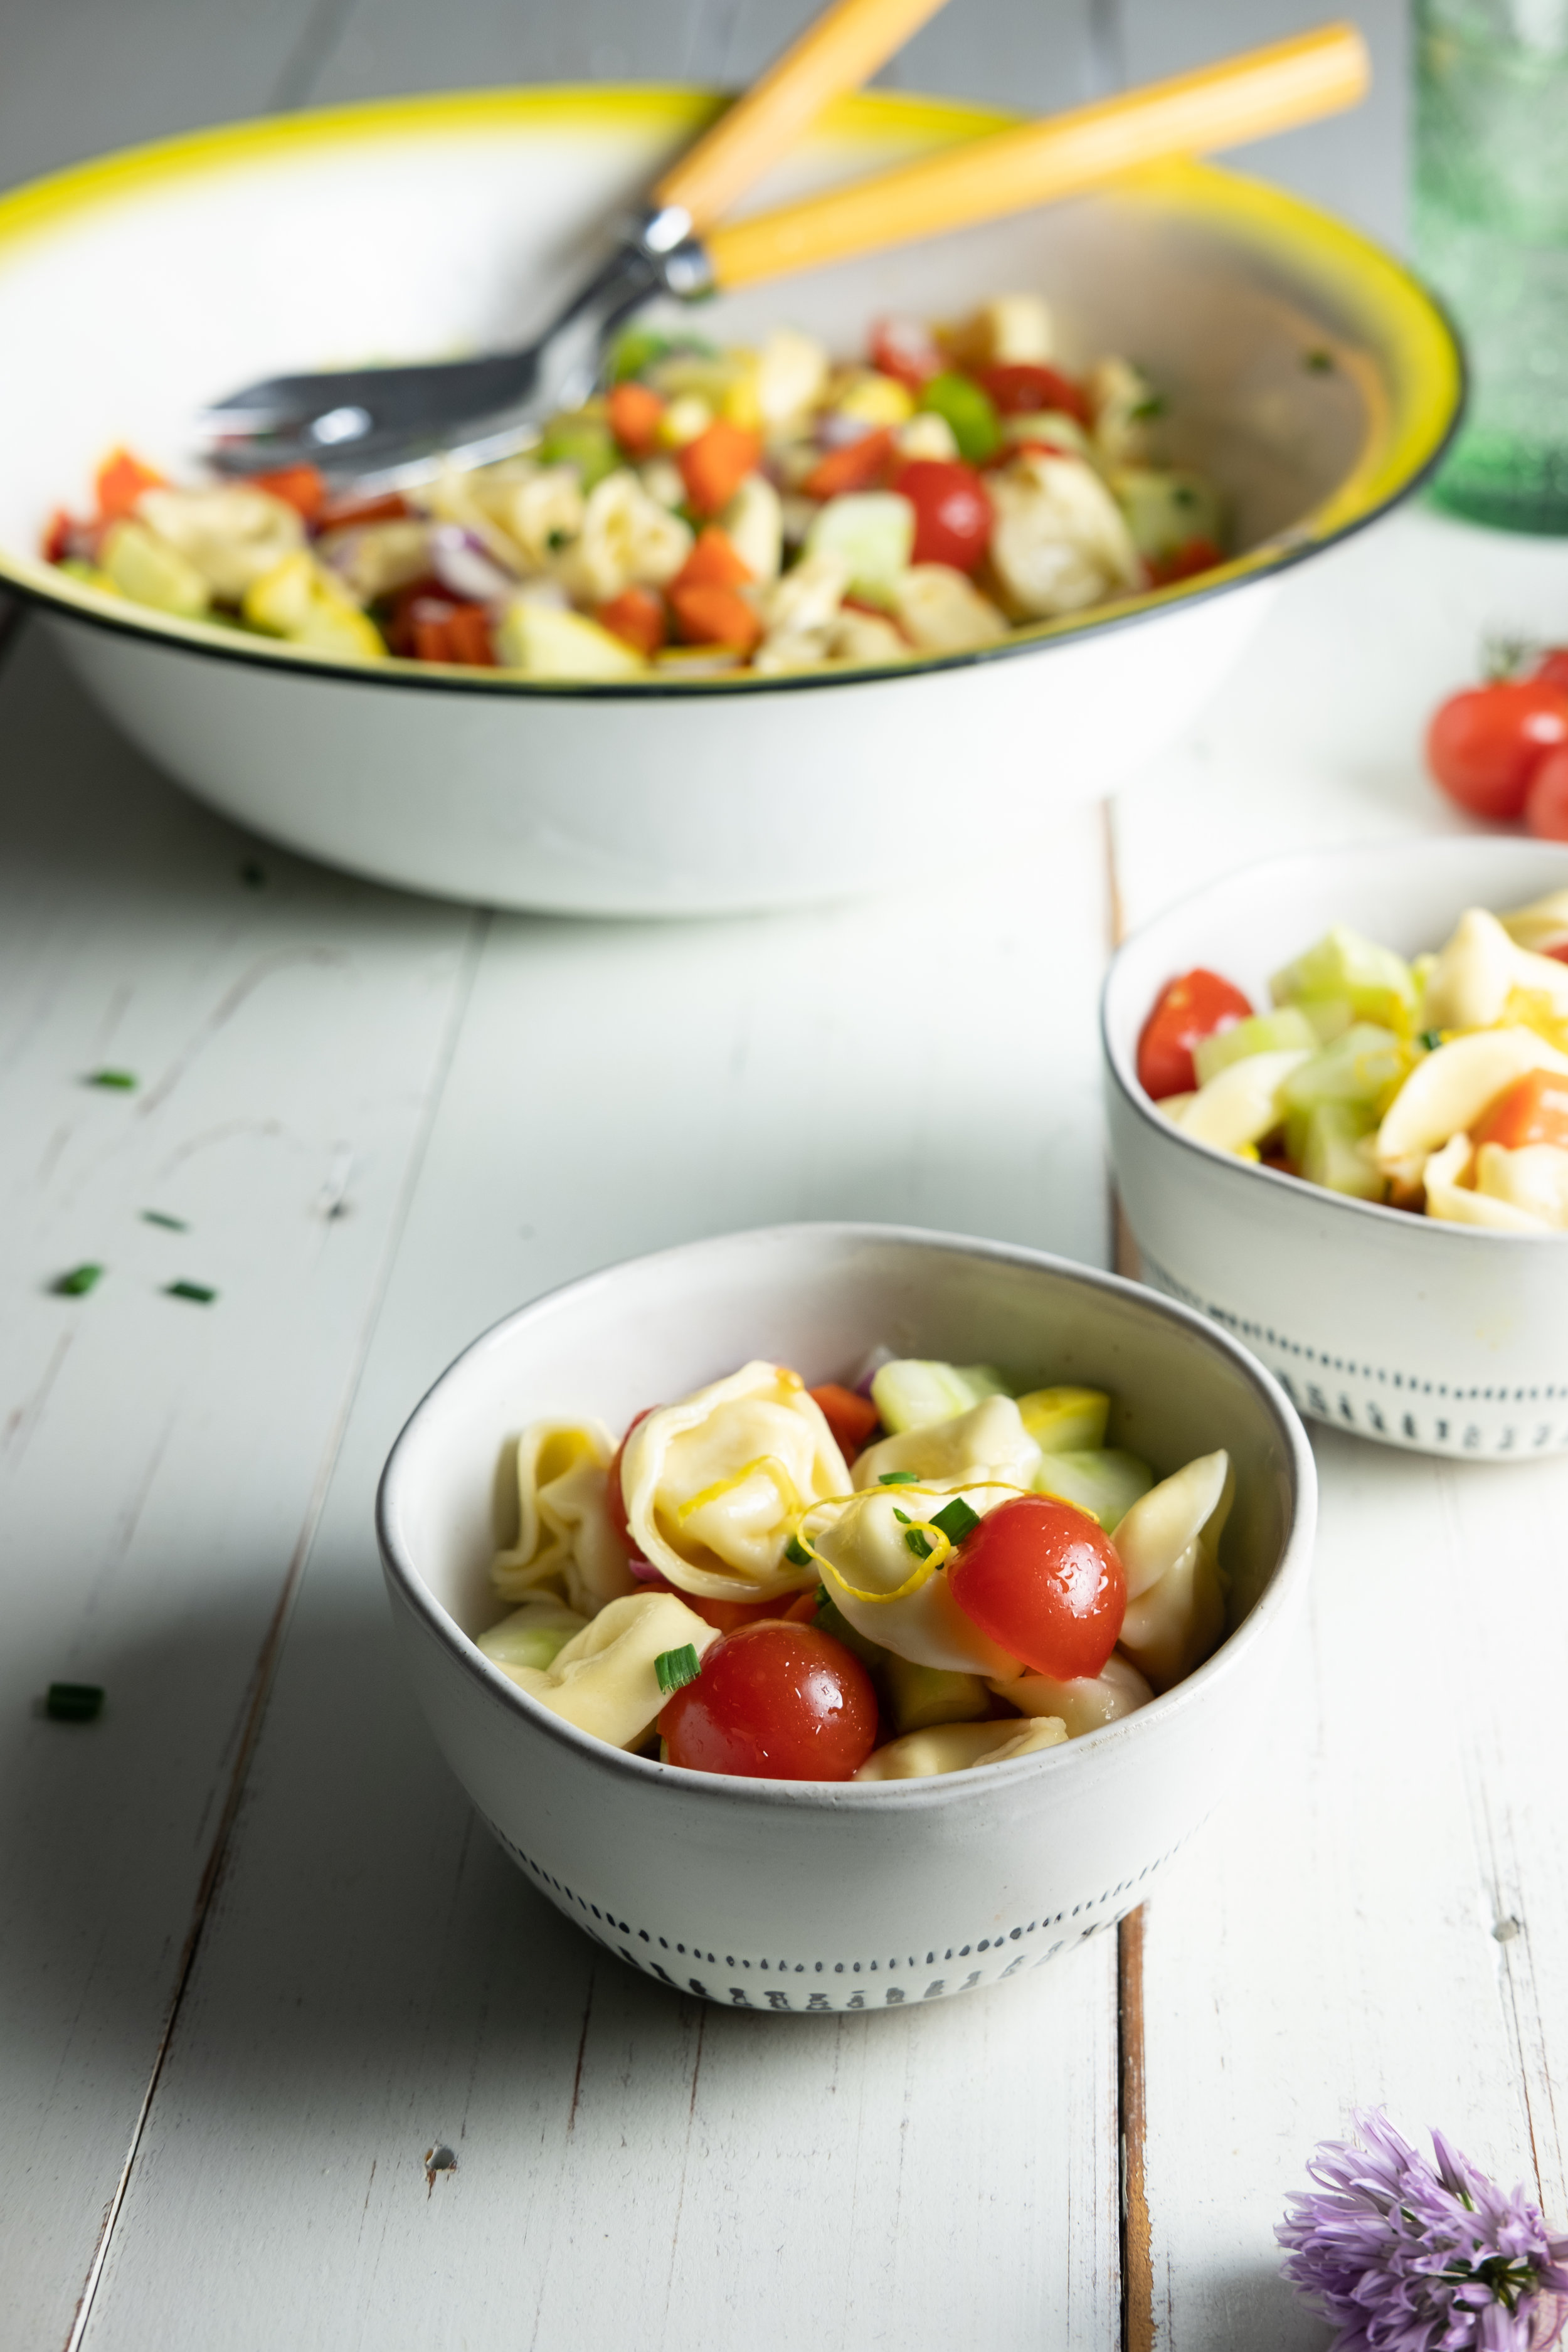 Serving bowl of tortellini salad and tomatoes on white wooden surface